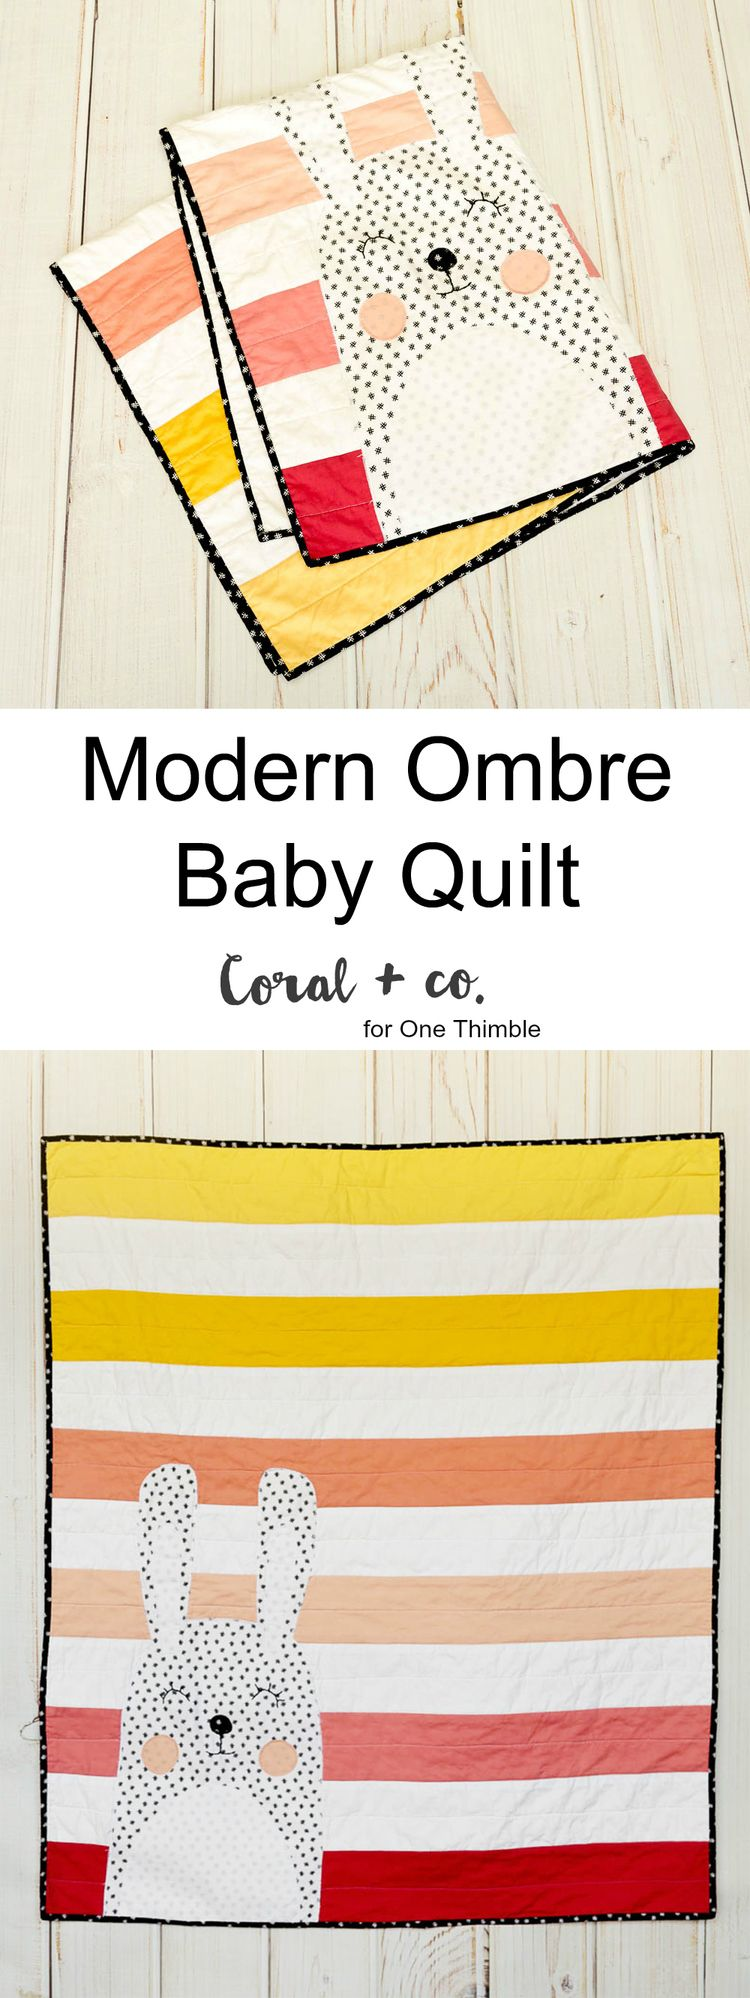 Modern Ombre Baby Quilt | Quilting | Pinterest | Bebe, Costura and ...